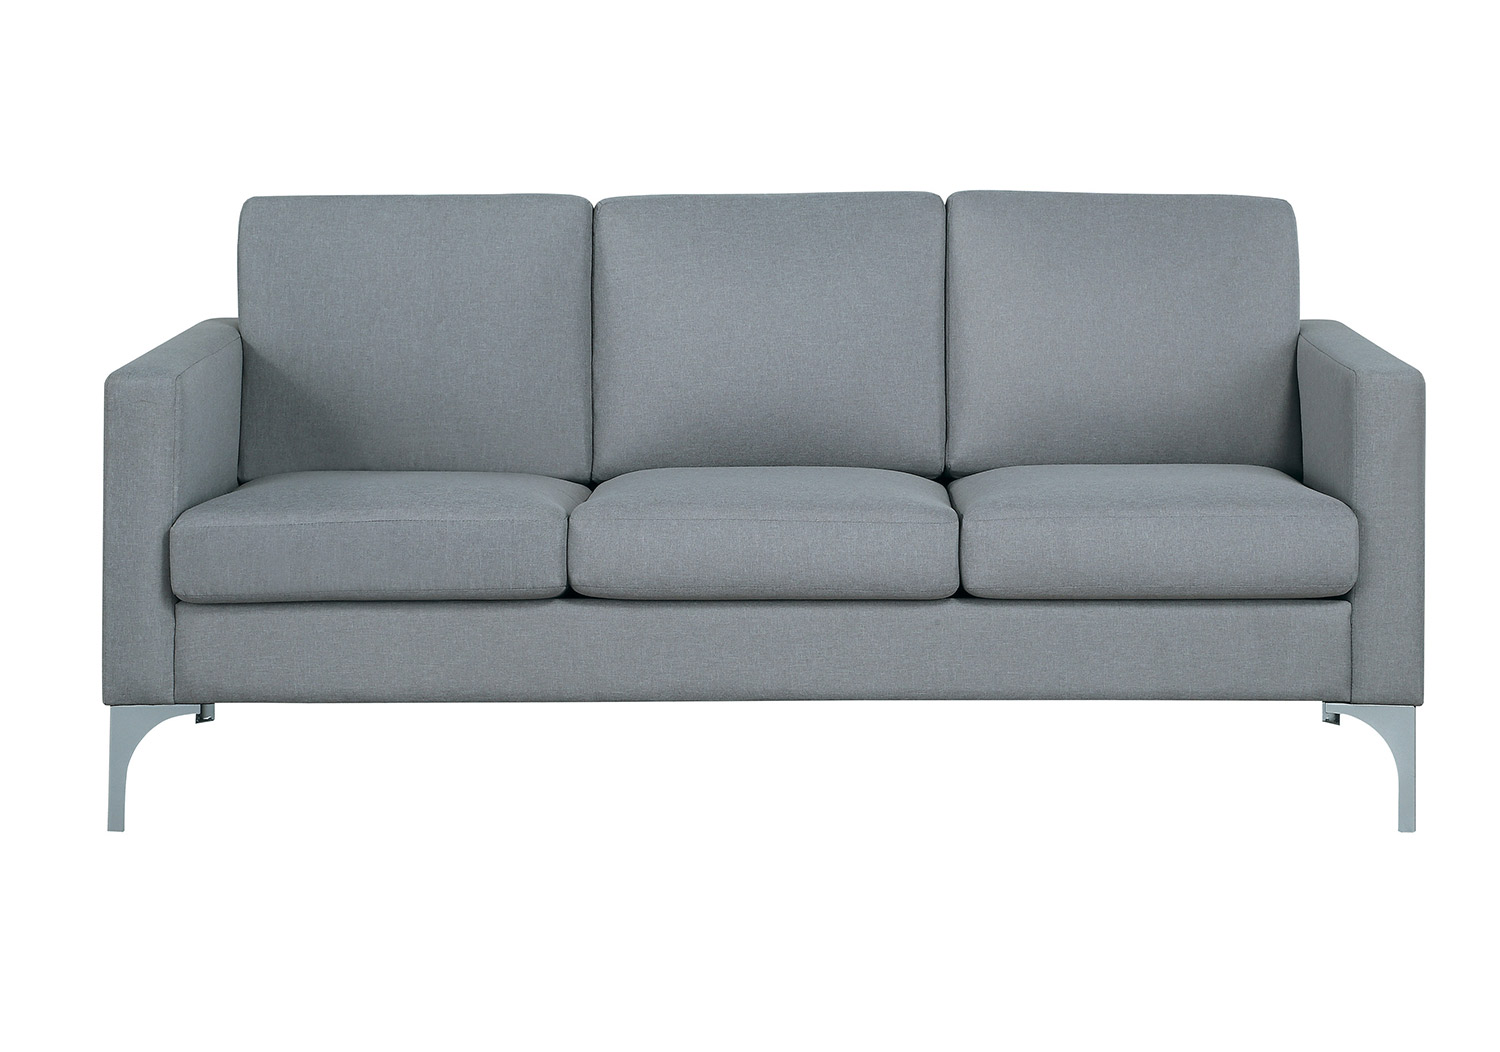 Homelegance Soho Sofa - Light Gray